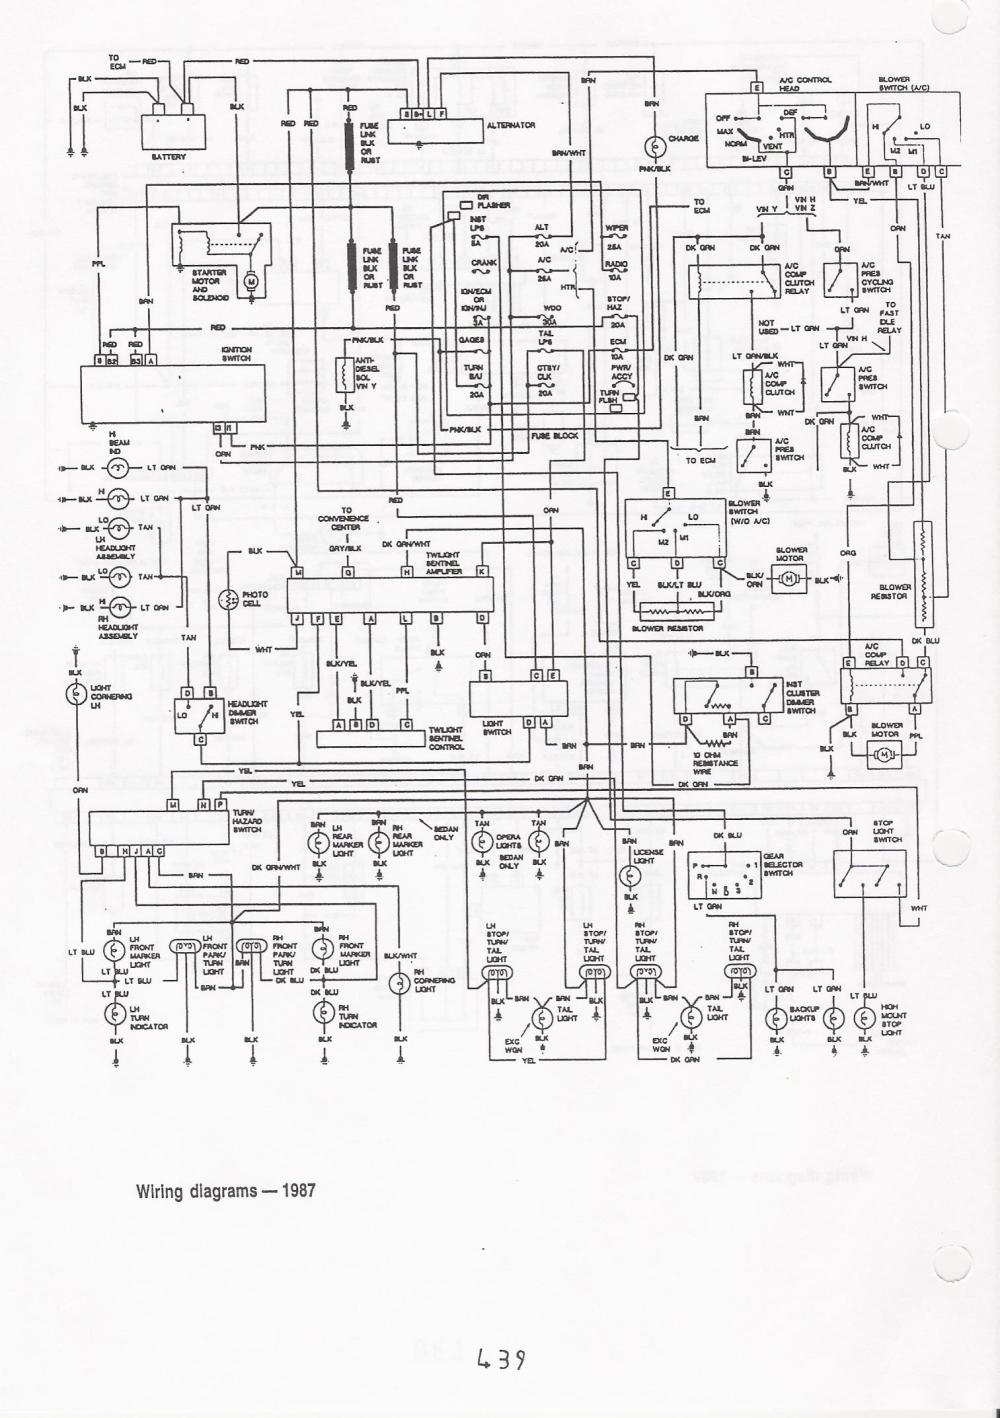 medium resolution of chevy nova wiring diagram chevy nova exhaust systems 1967 camaro wiring diagram 87 camaro alternator wiring